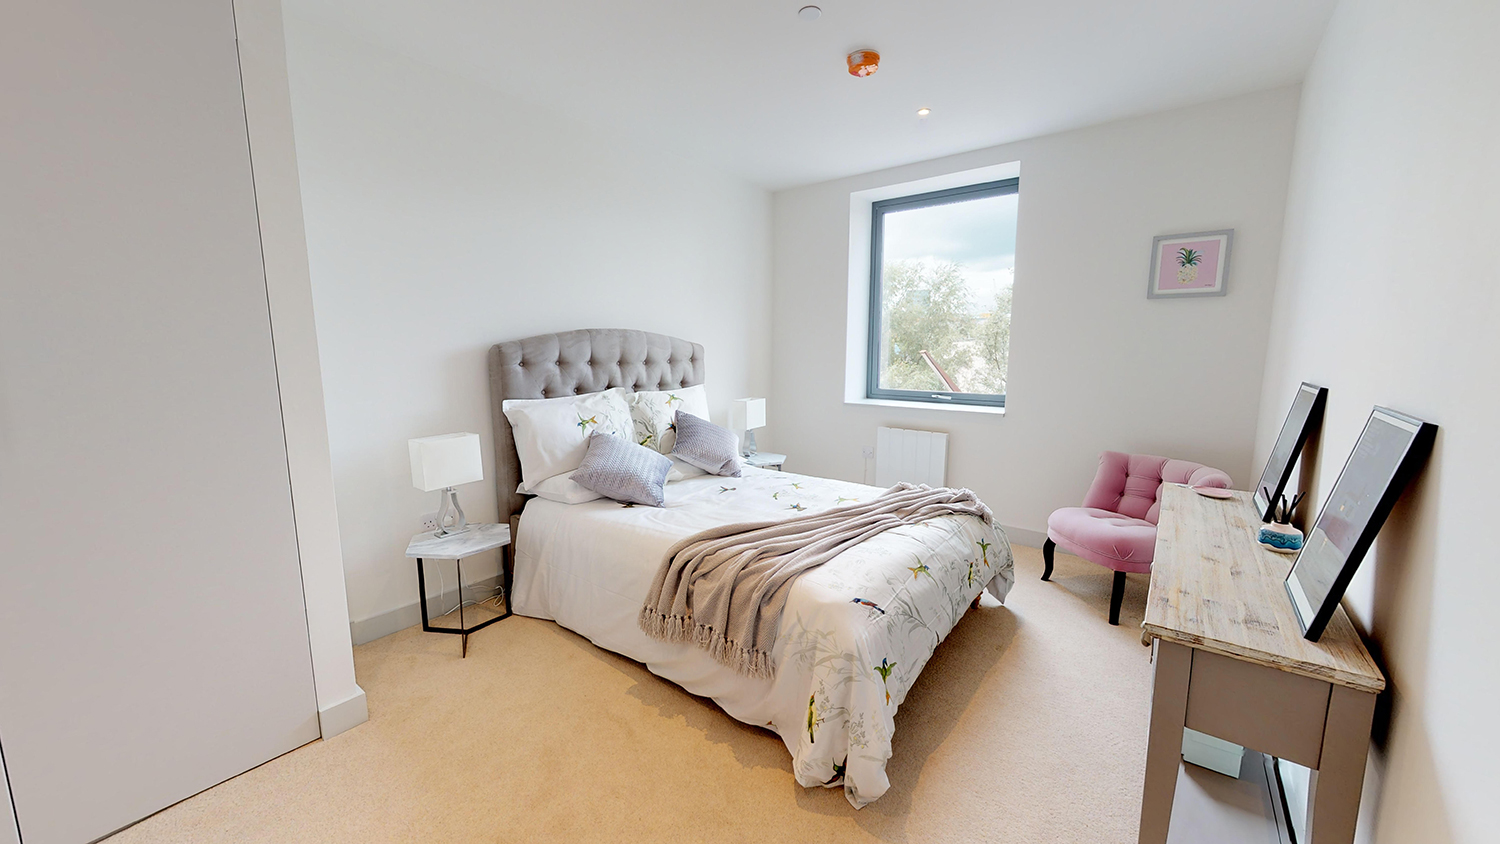 One-Vesta-Street-Manchester-2-Bedroom-Apartment-08212019_222610-lr.jpg